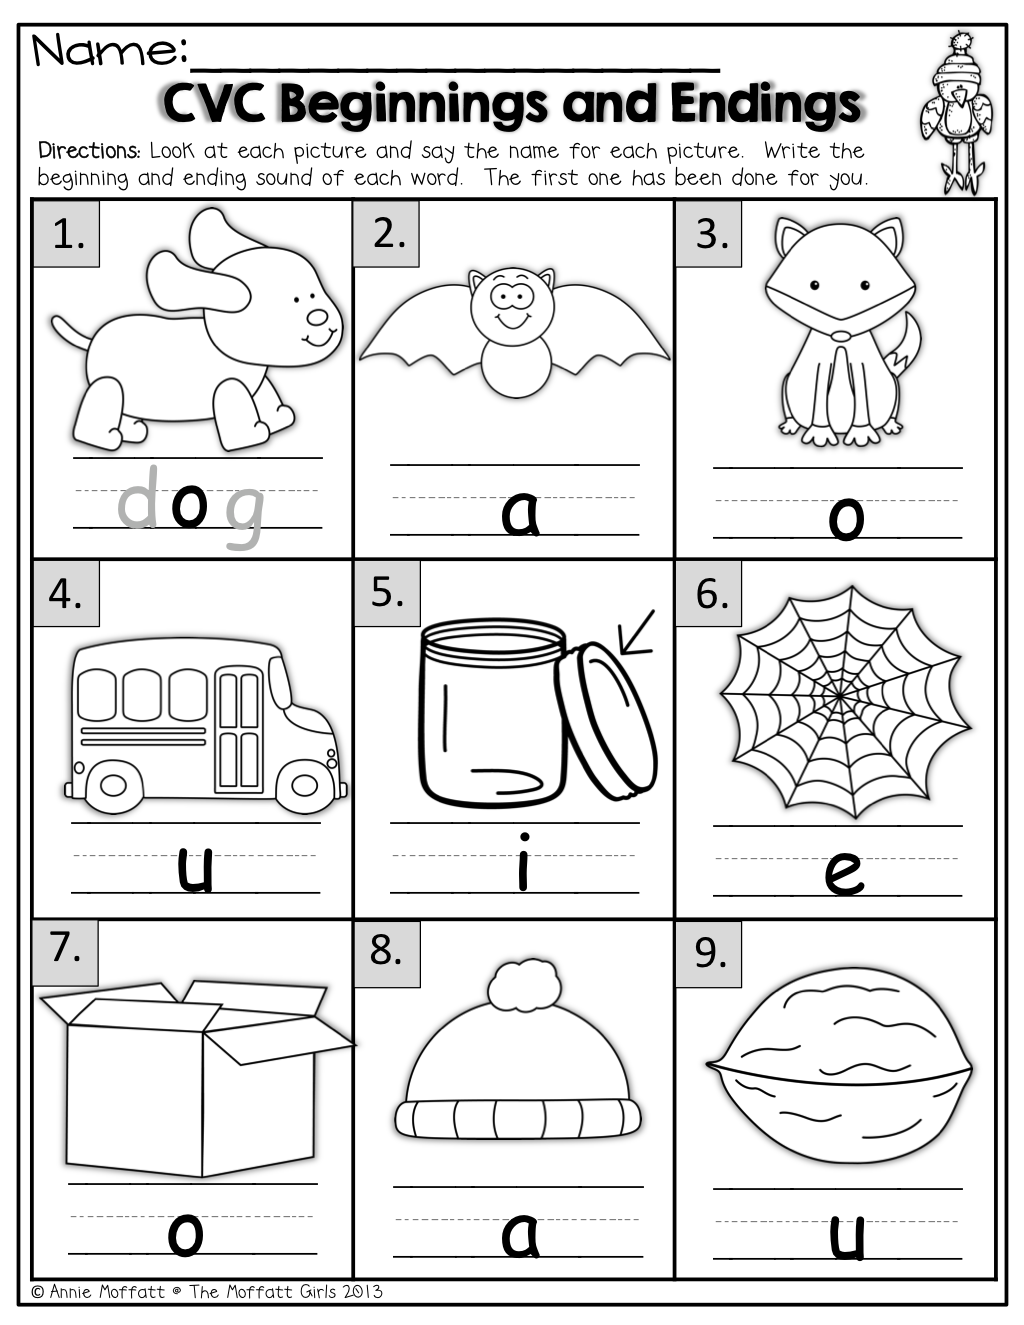 Beginning and Ending Sounds – Ending Sounds Worksheets Kindergarten